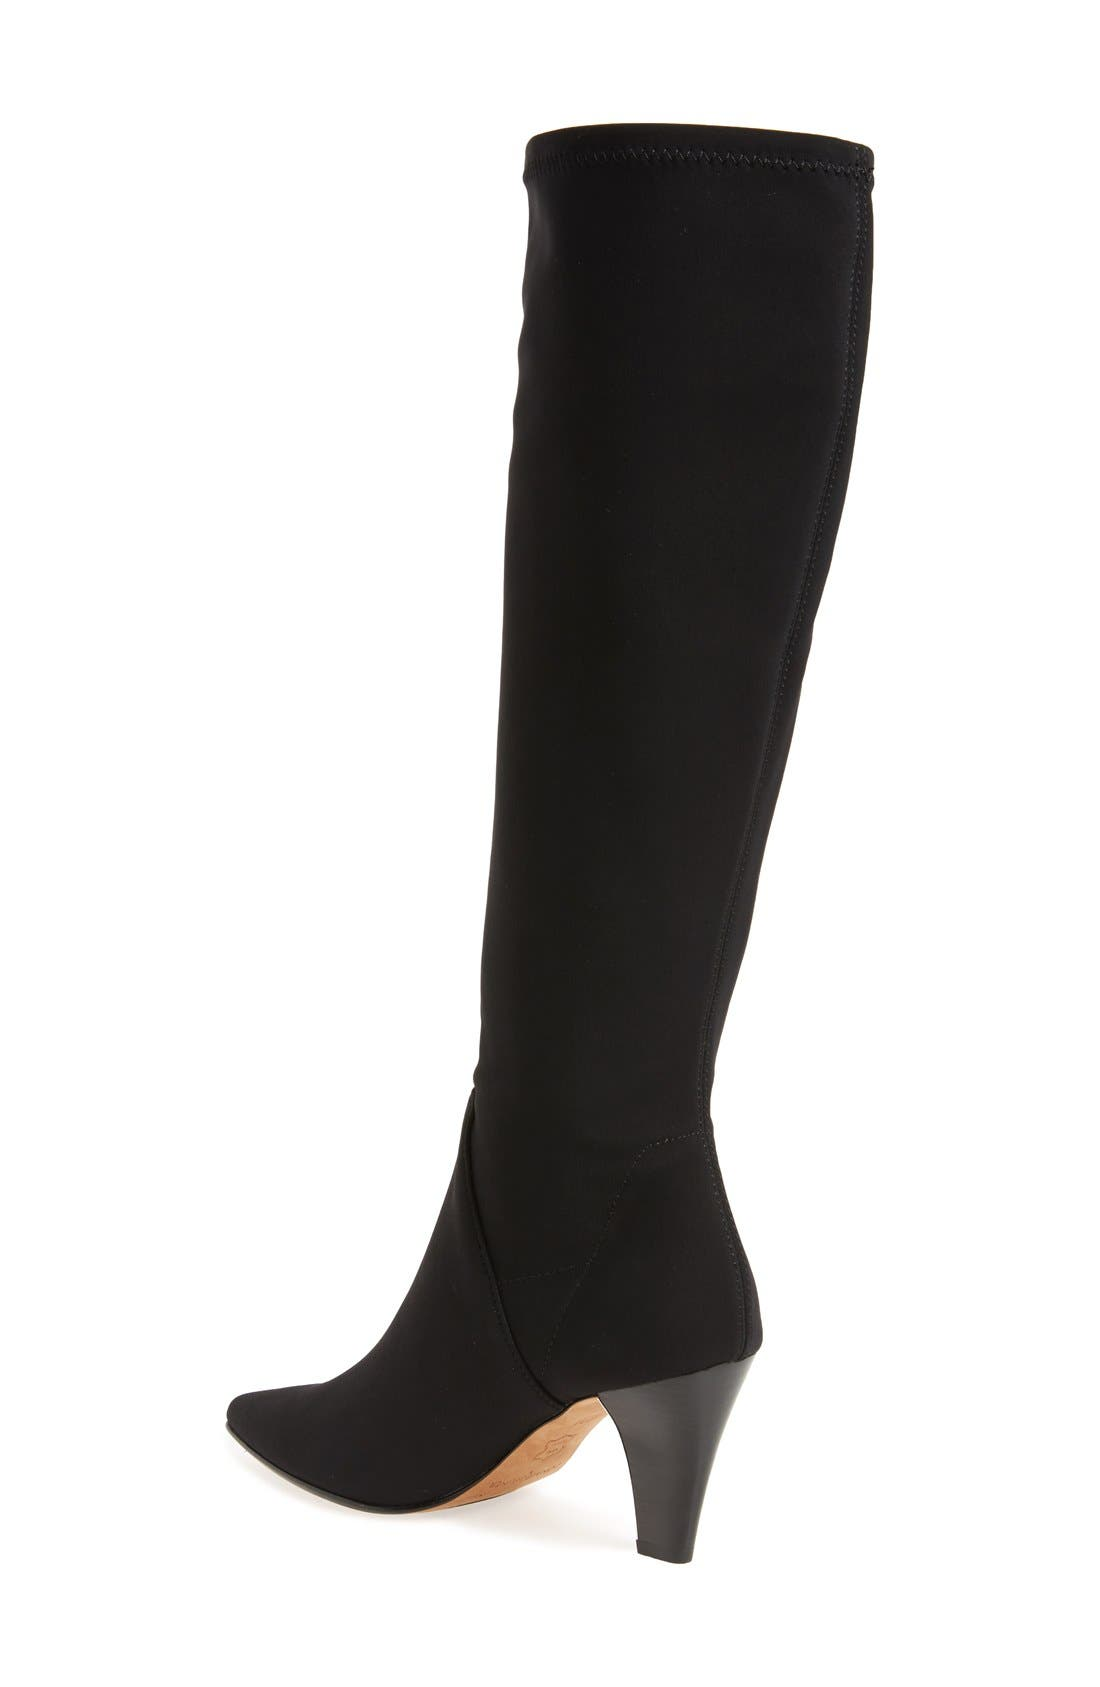 Alternate Image 2  - Donald J Pliner 'Tessa' Knee High Boot (Women)